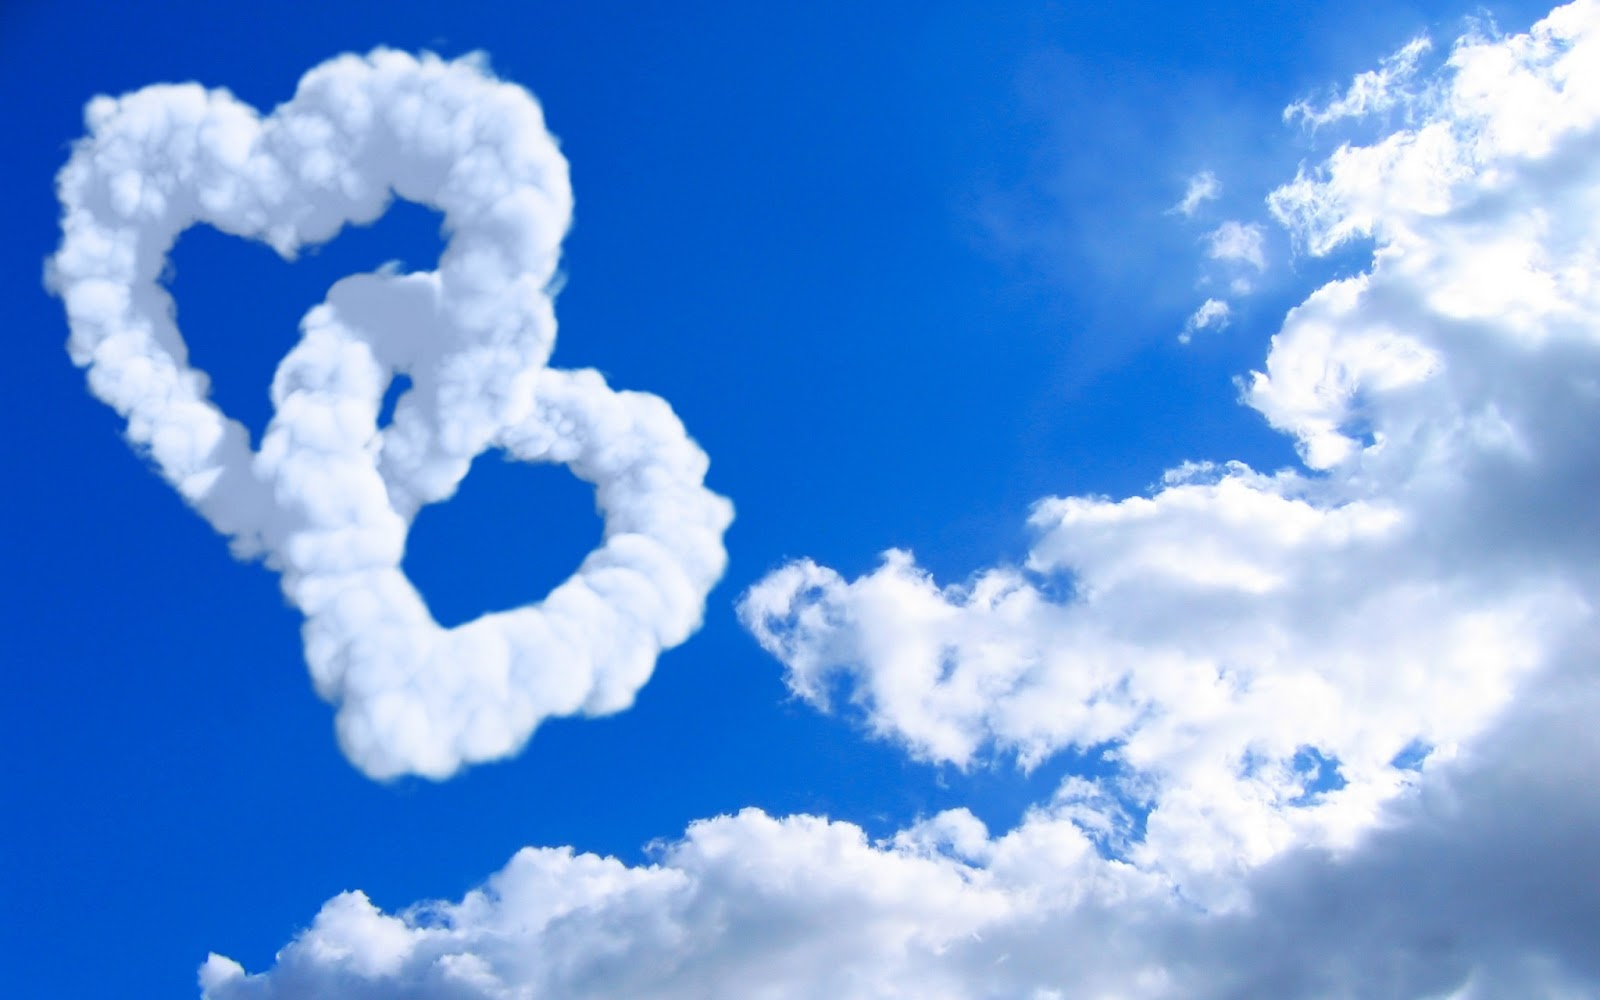 Parents Love Desktop Wallpaper : Free Wallpaper Dekstop: 3d love with clouds wallpaper, wallpaper for desktop